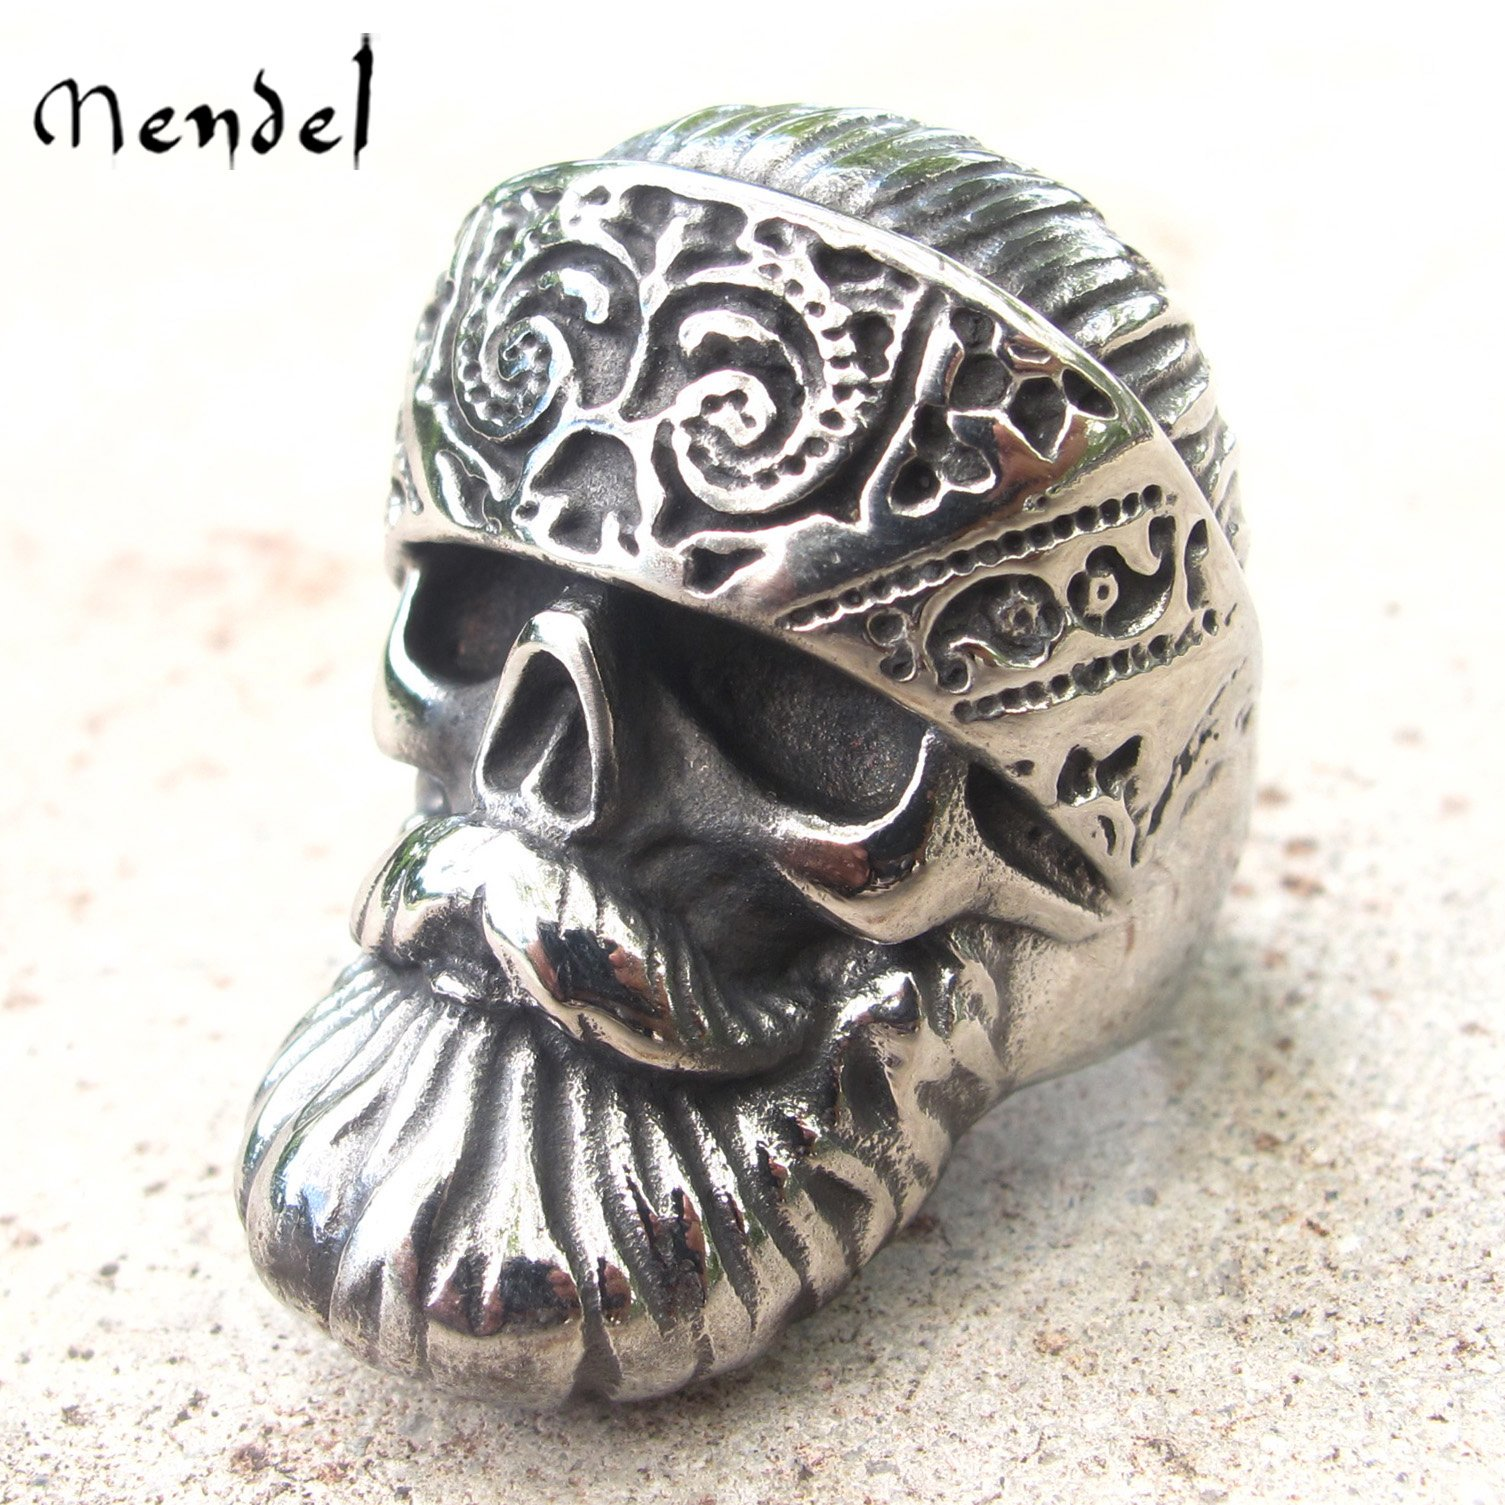 MENDEL Mens Motorcycle Club Rings Biker Punk Skull Ring For Men Stainless Steel